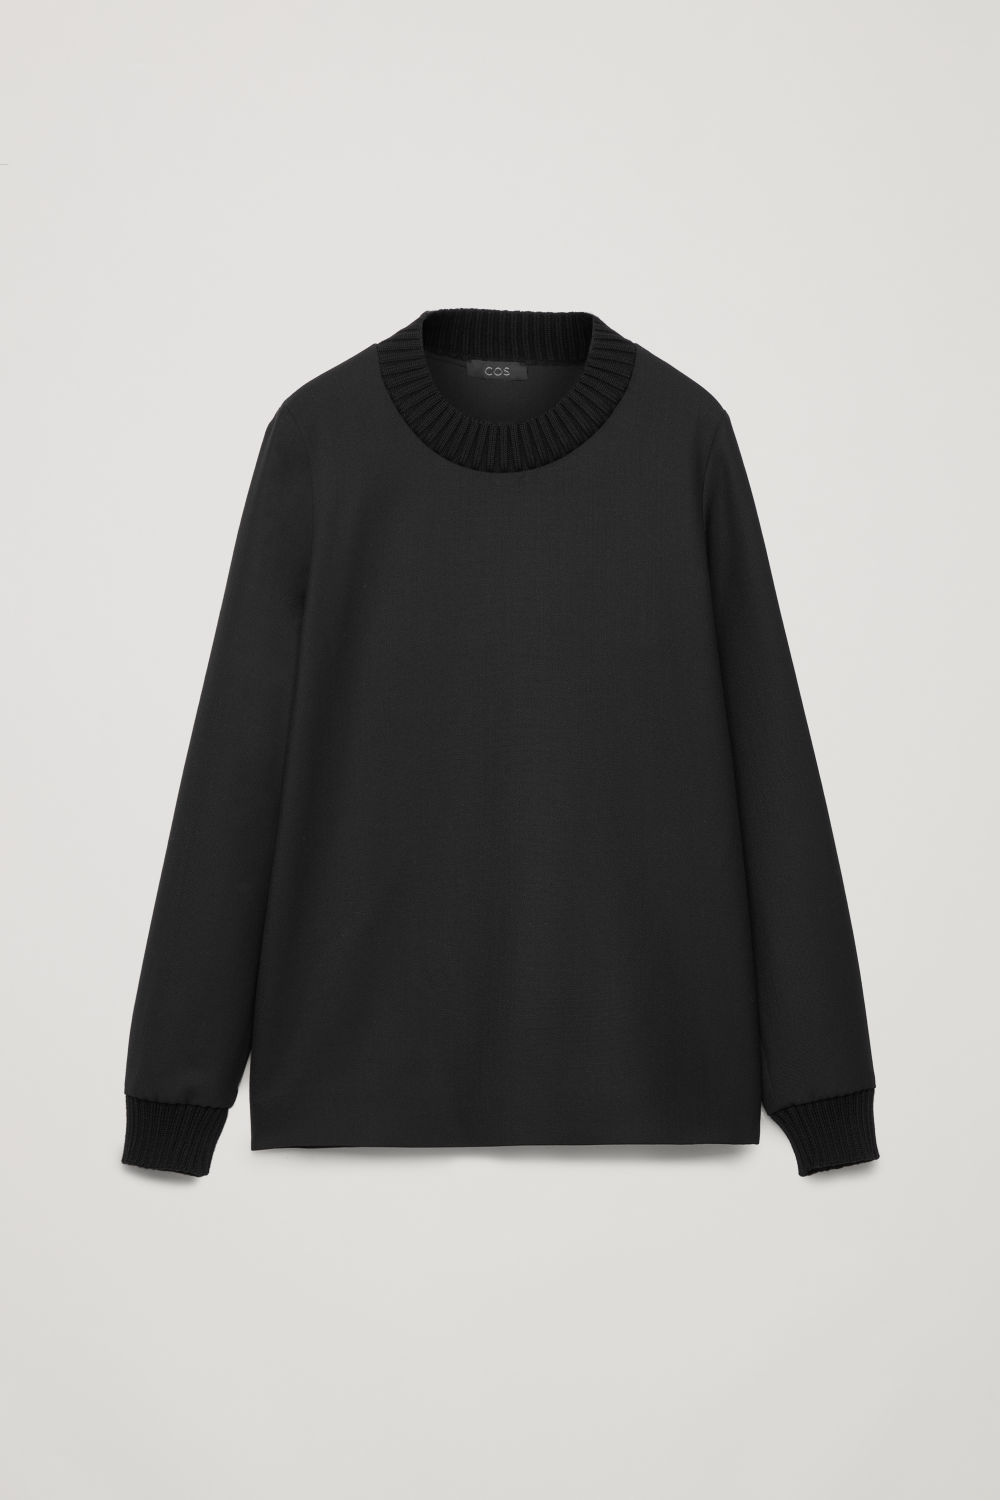 TOP WITH KNITTED EDGES